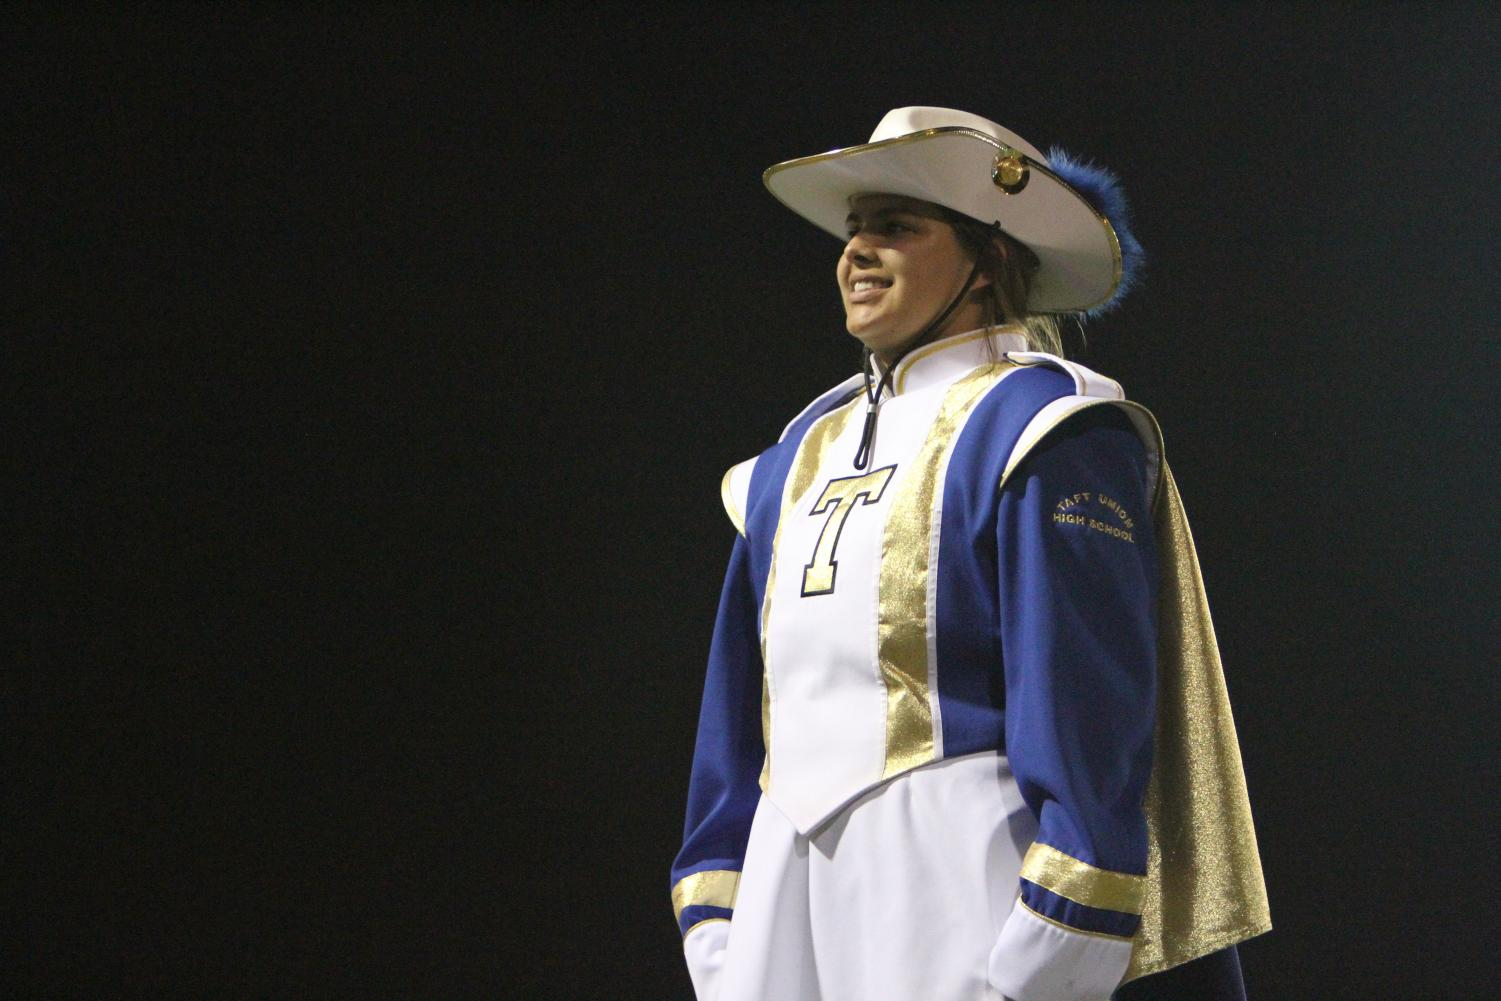 Drum Major Angie Self conducts the show and leads the band.